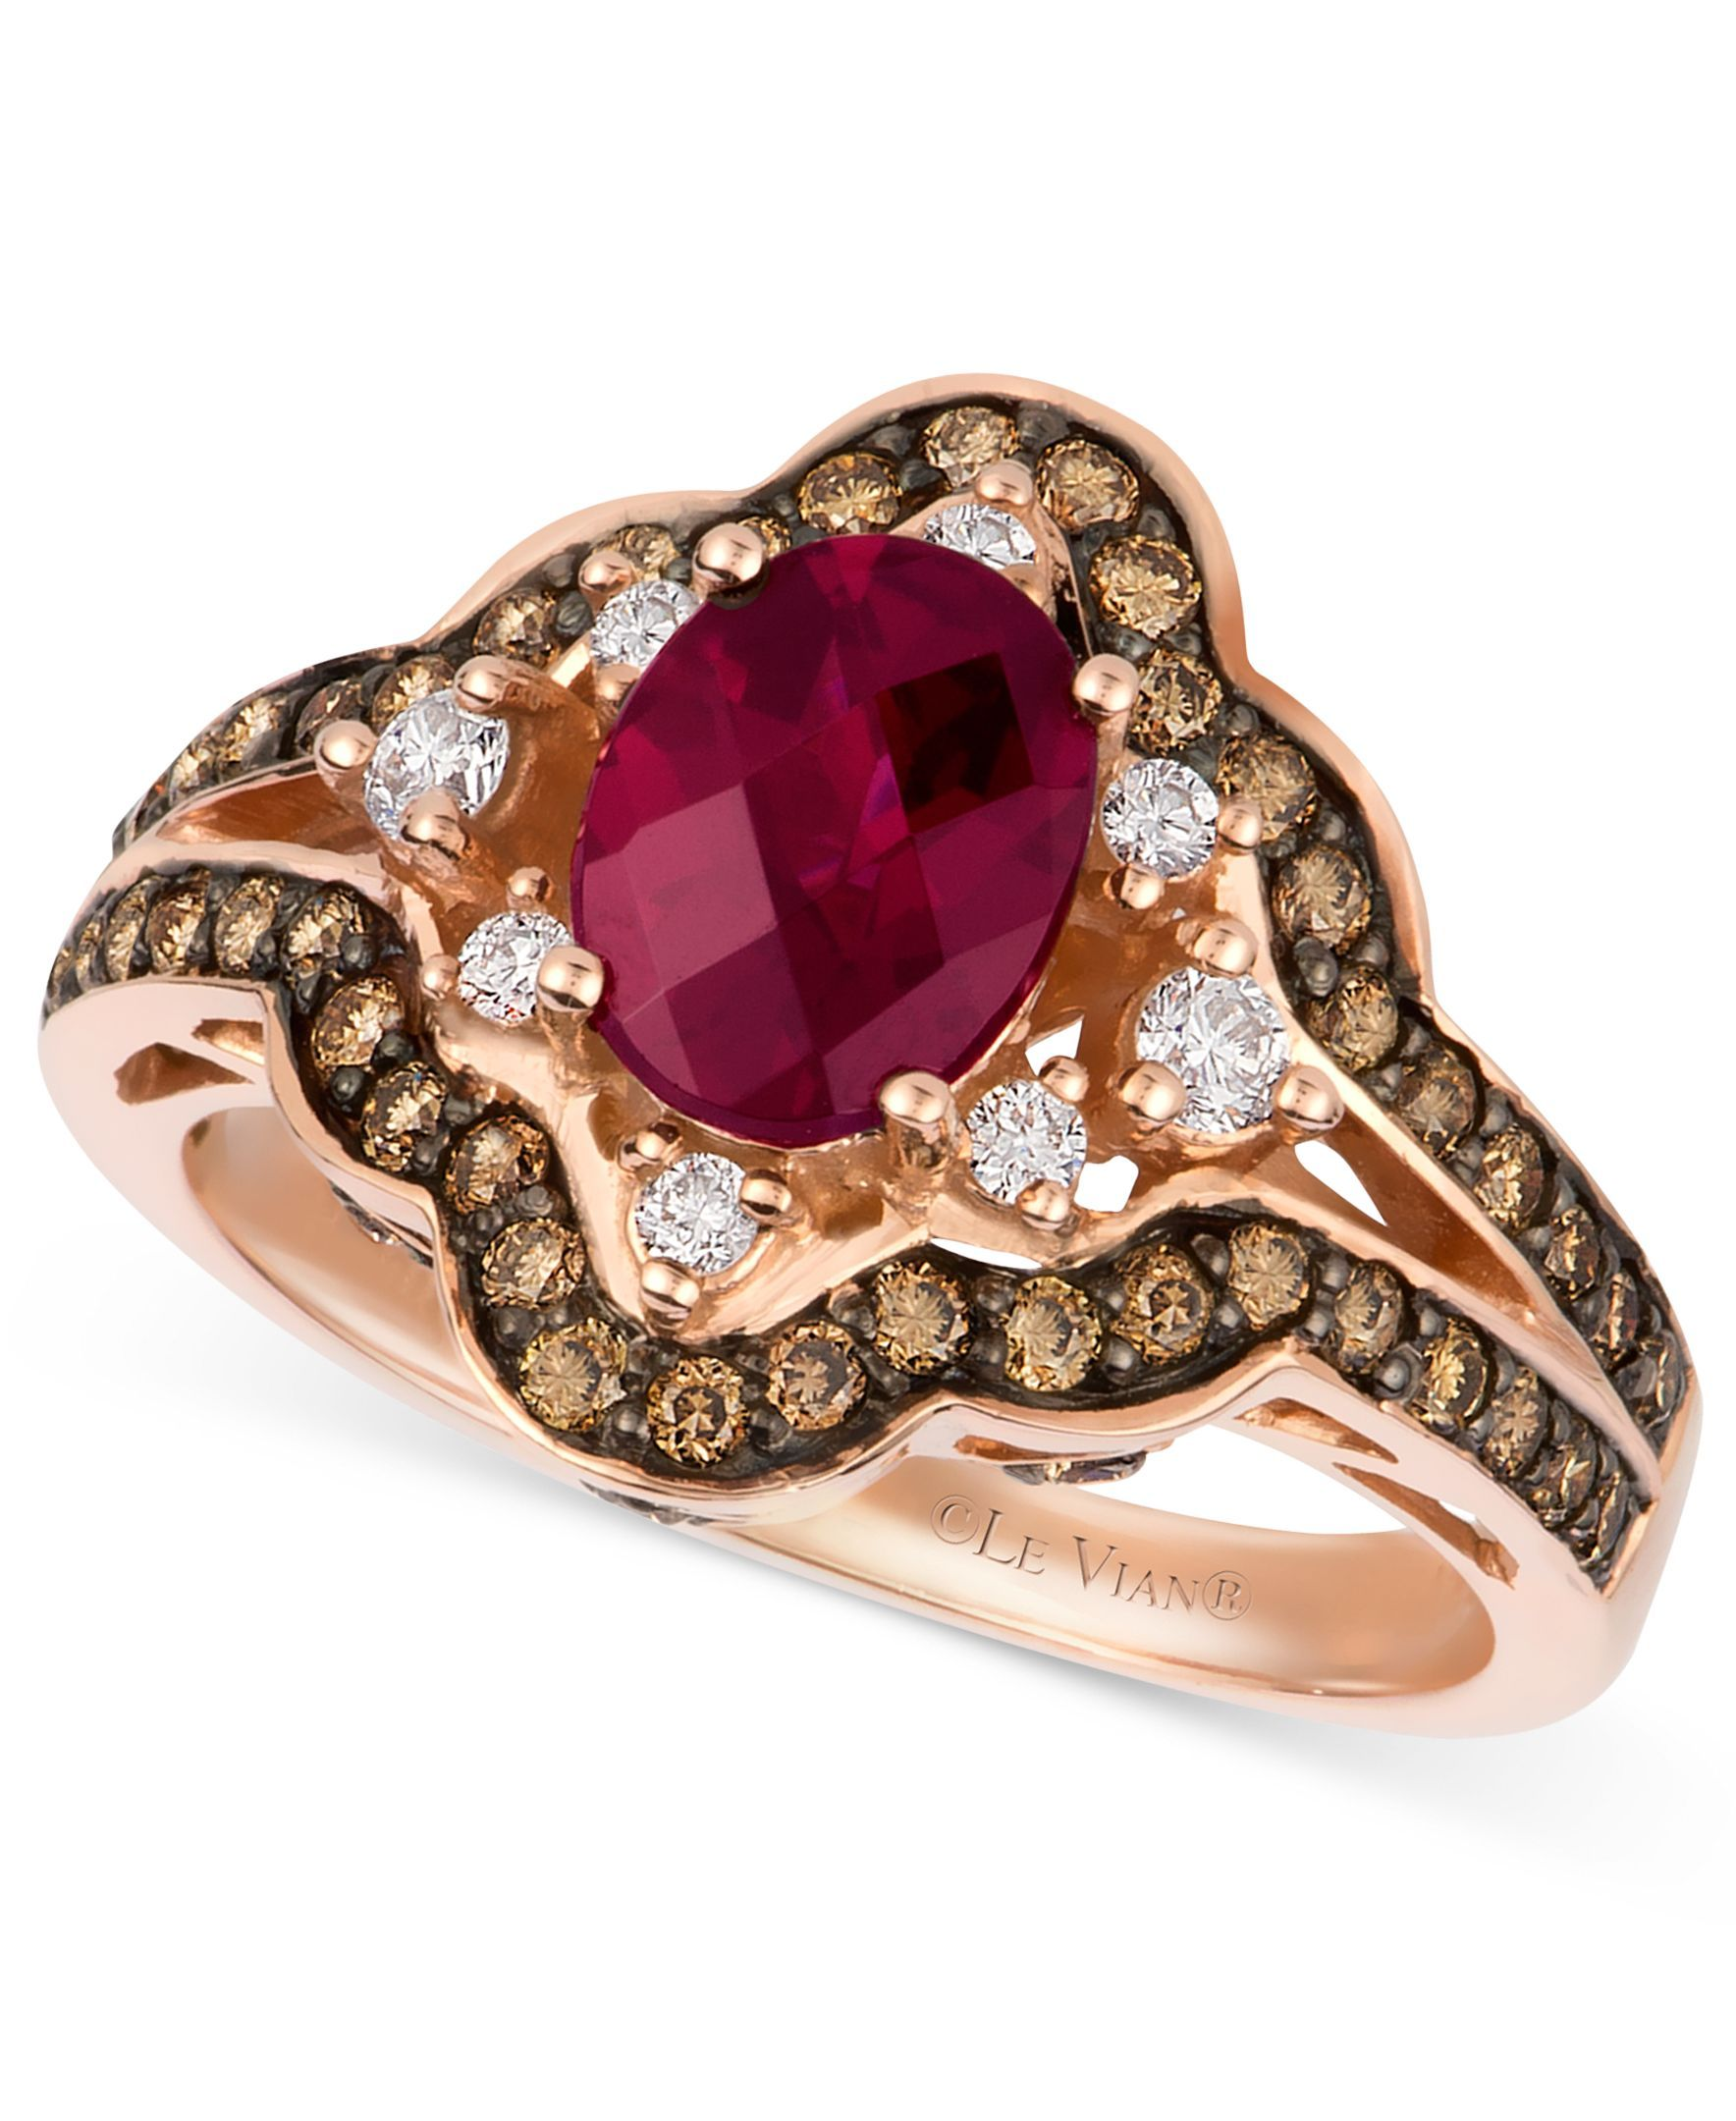 le vian 14k rose gold ring raspberry rhodolite garnet 1 3 8 ct